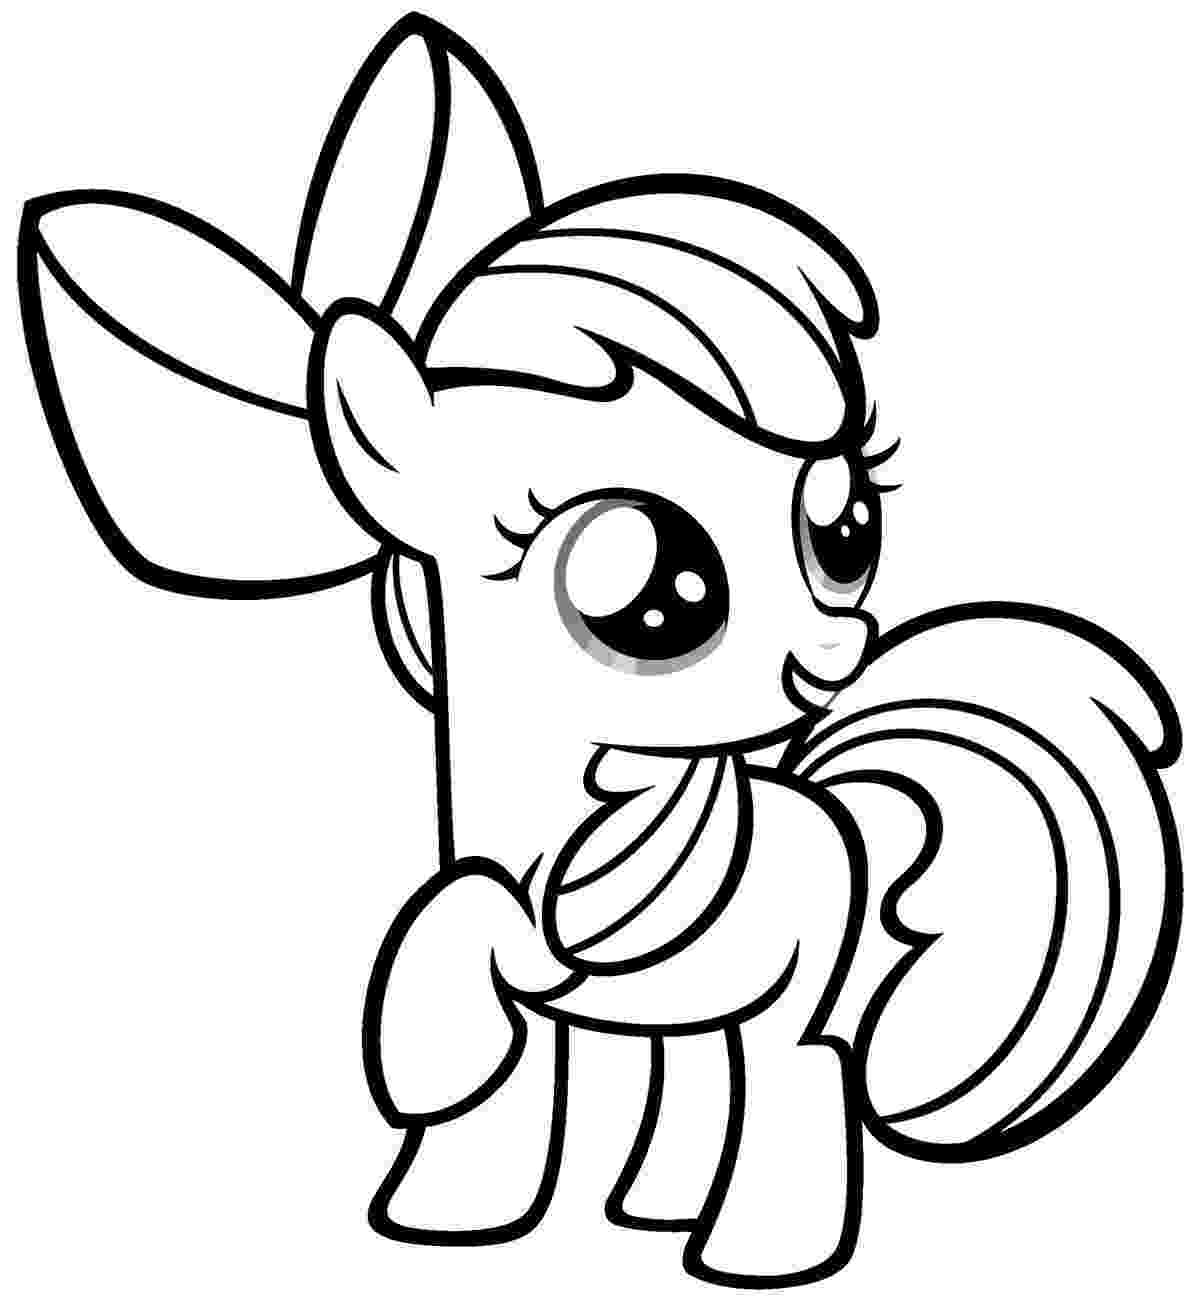 my little pony printable pages my little pony fluttershy coloring pages team colors pages little pony my printable